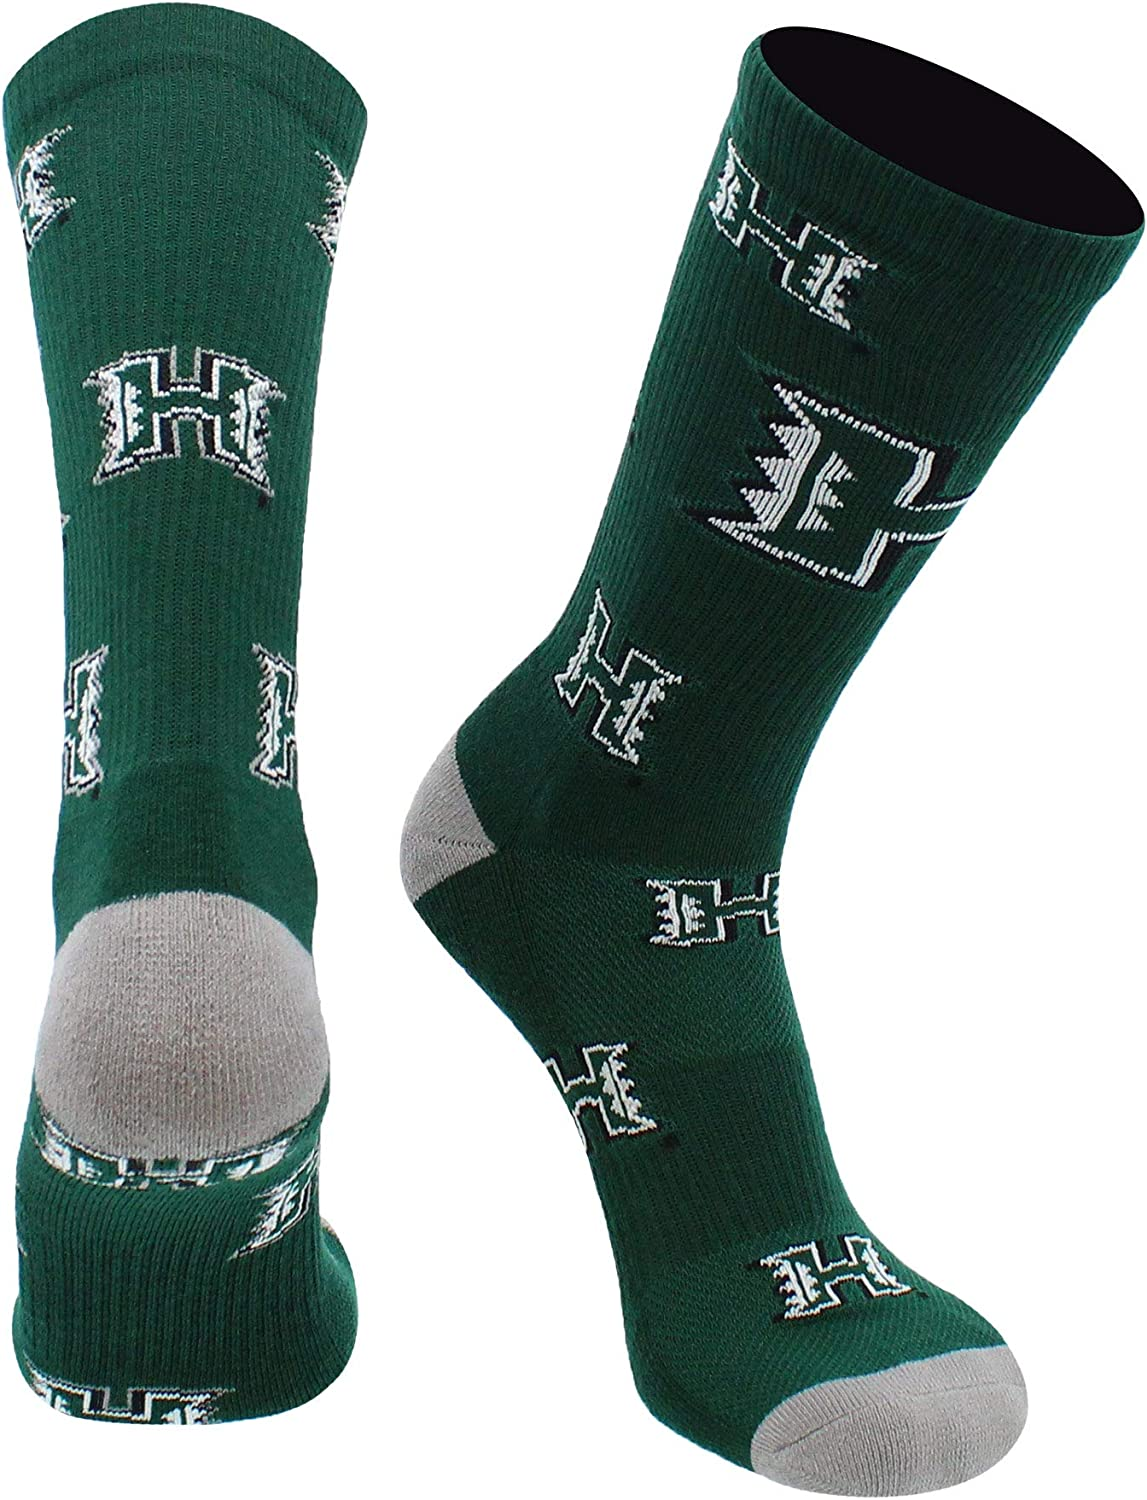 TCK Hawaii Rainbow Warriors Socks University of Hawaii Rainbow Warriors Mayhem Crew Socks